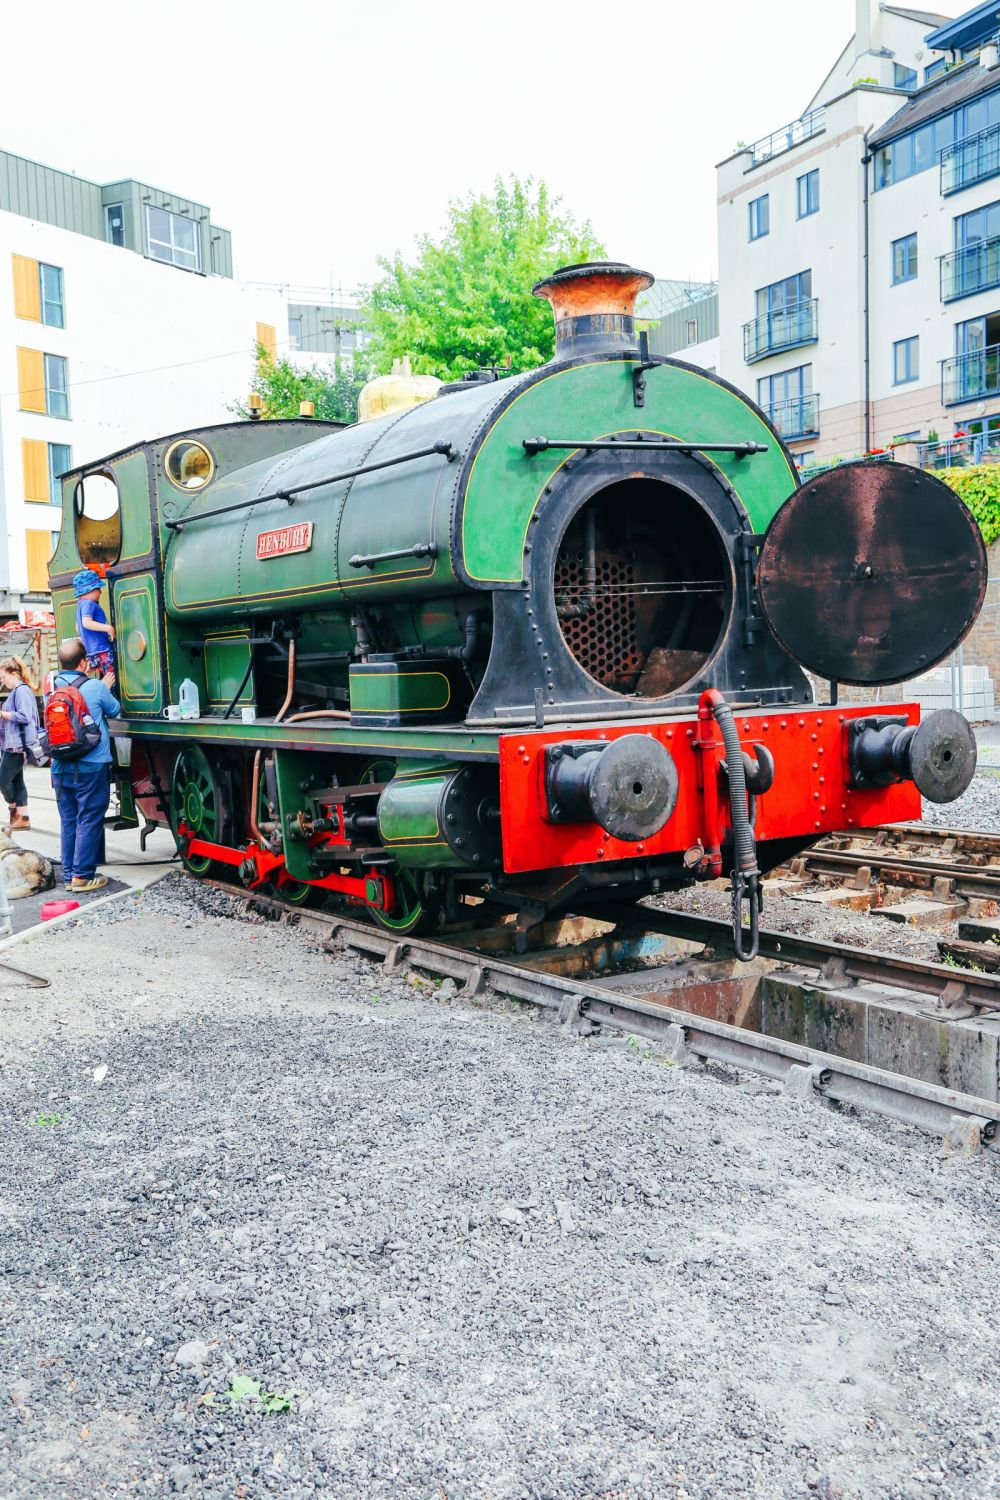 The Harbour Festival, Banksy, Steam Trains & The Girl With The Pierced Ear Drum... in Bristol, UK (41)